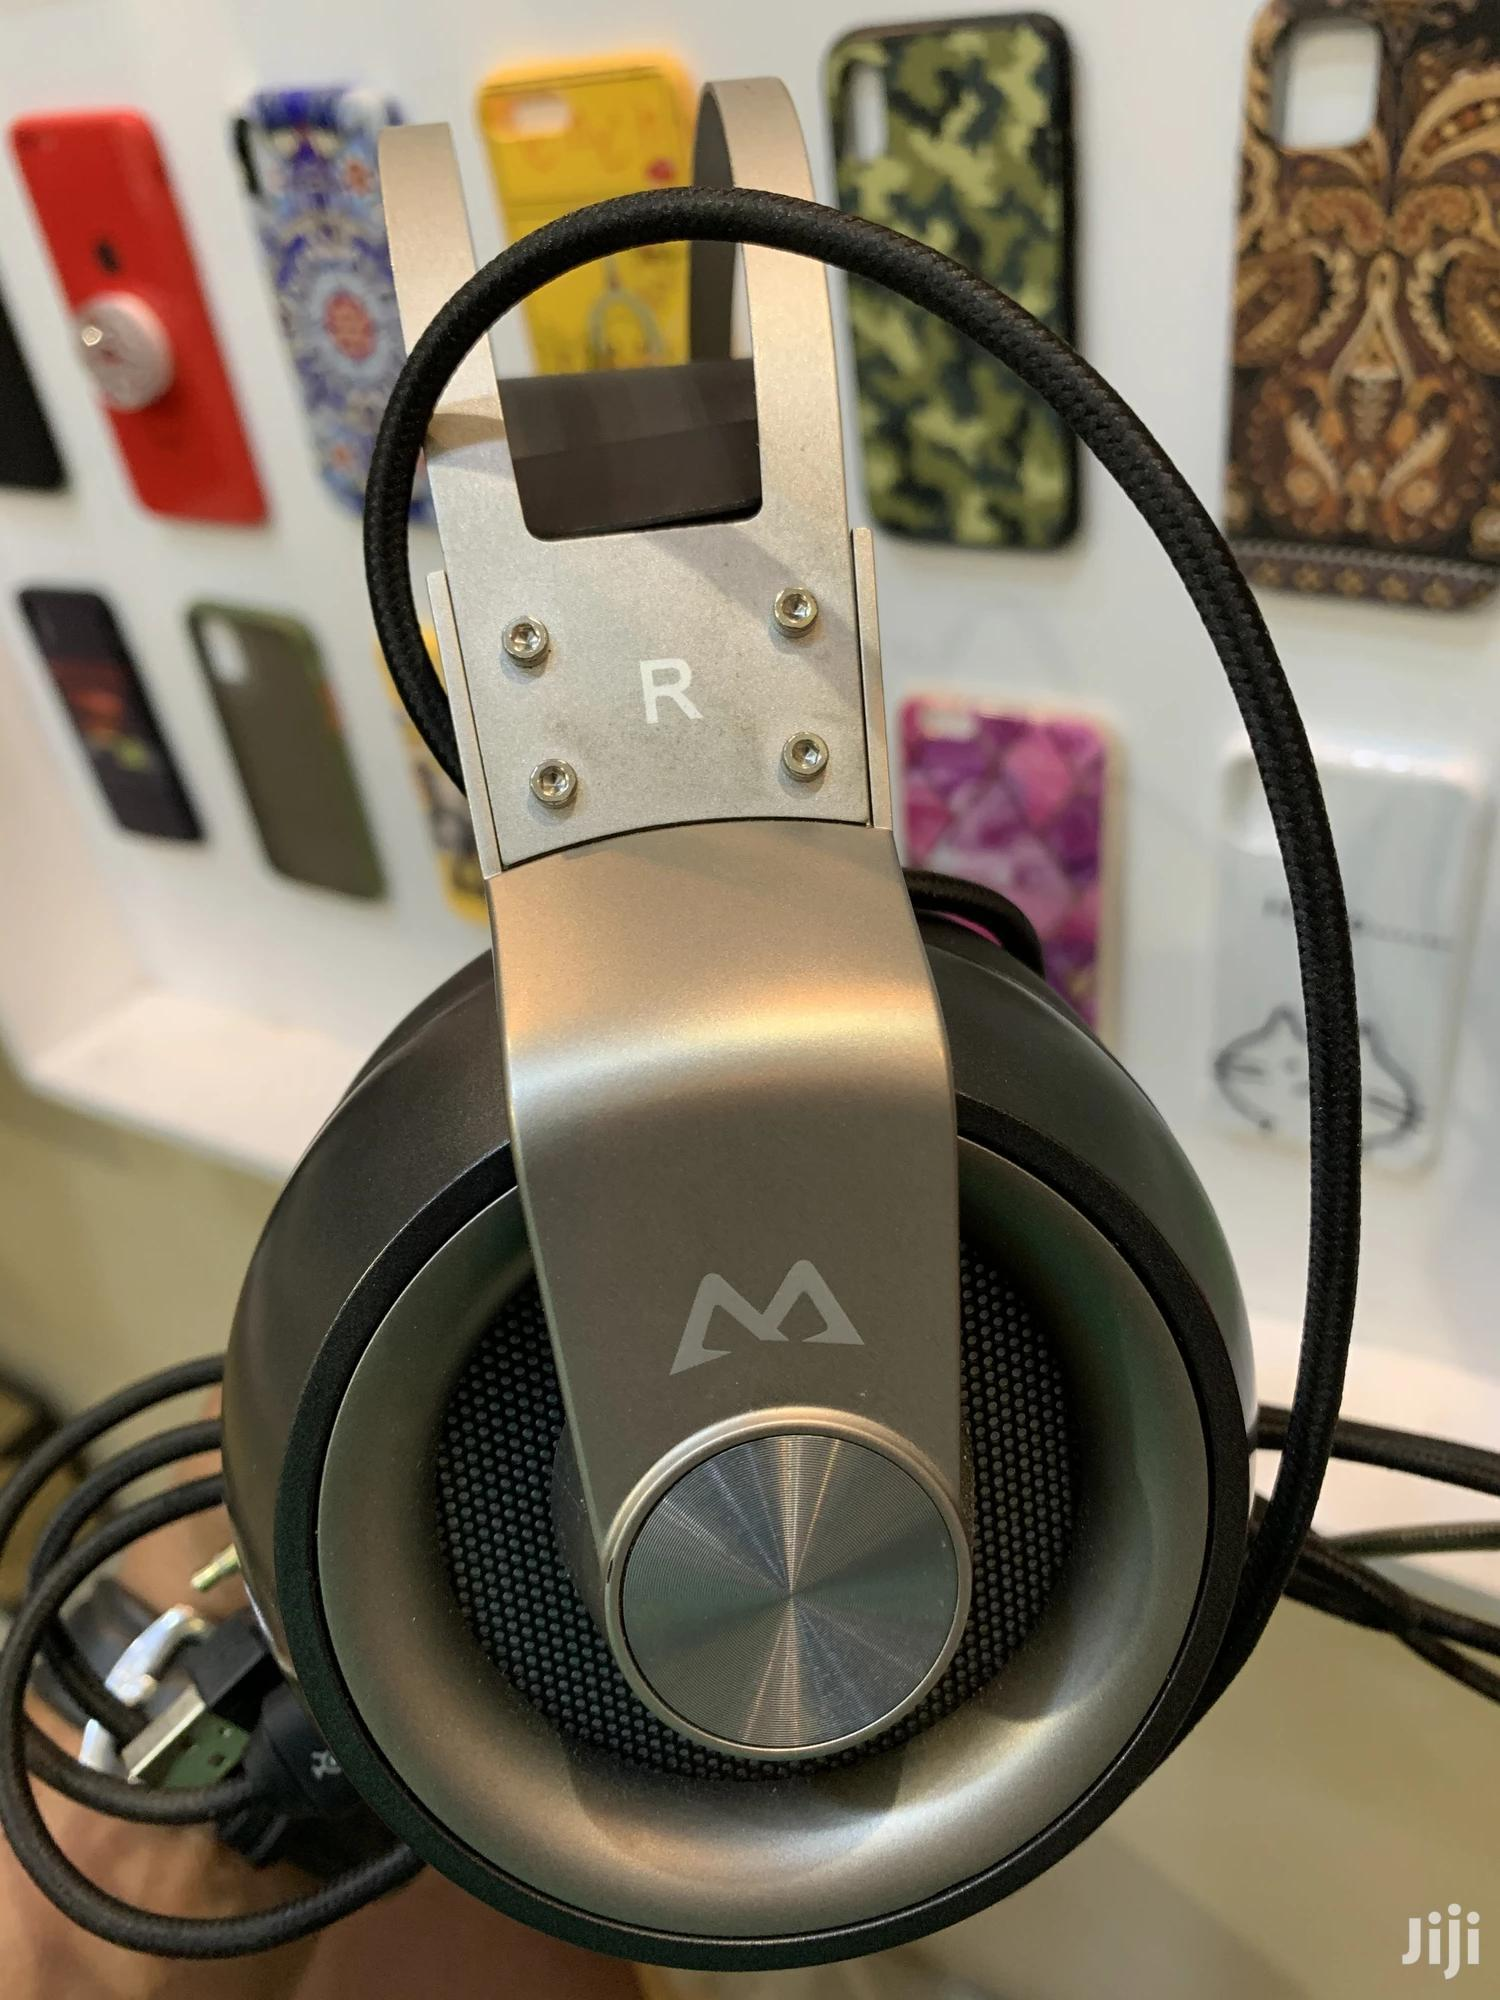 Archive: Gaming Headsets